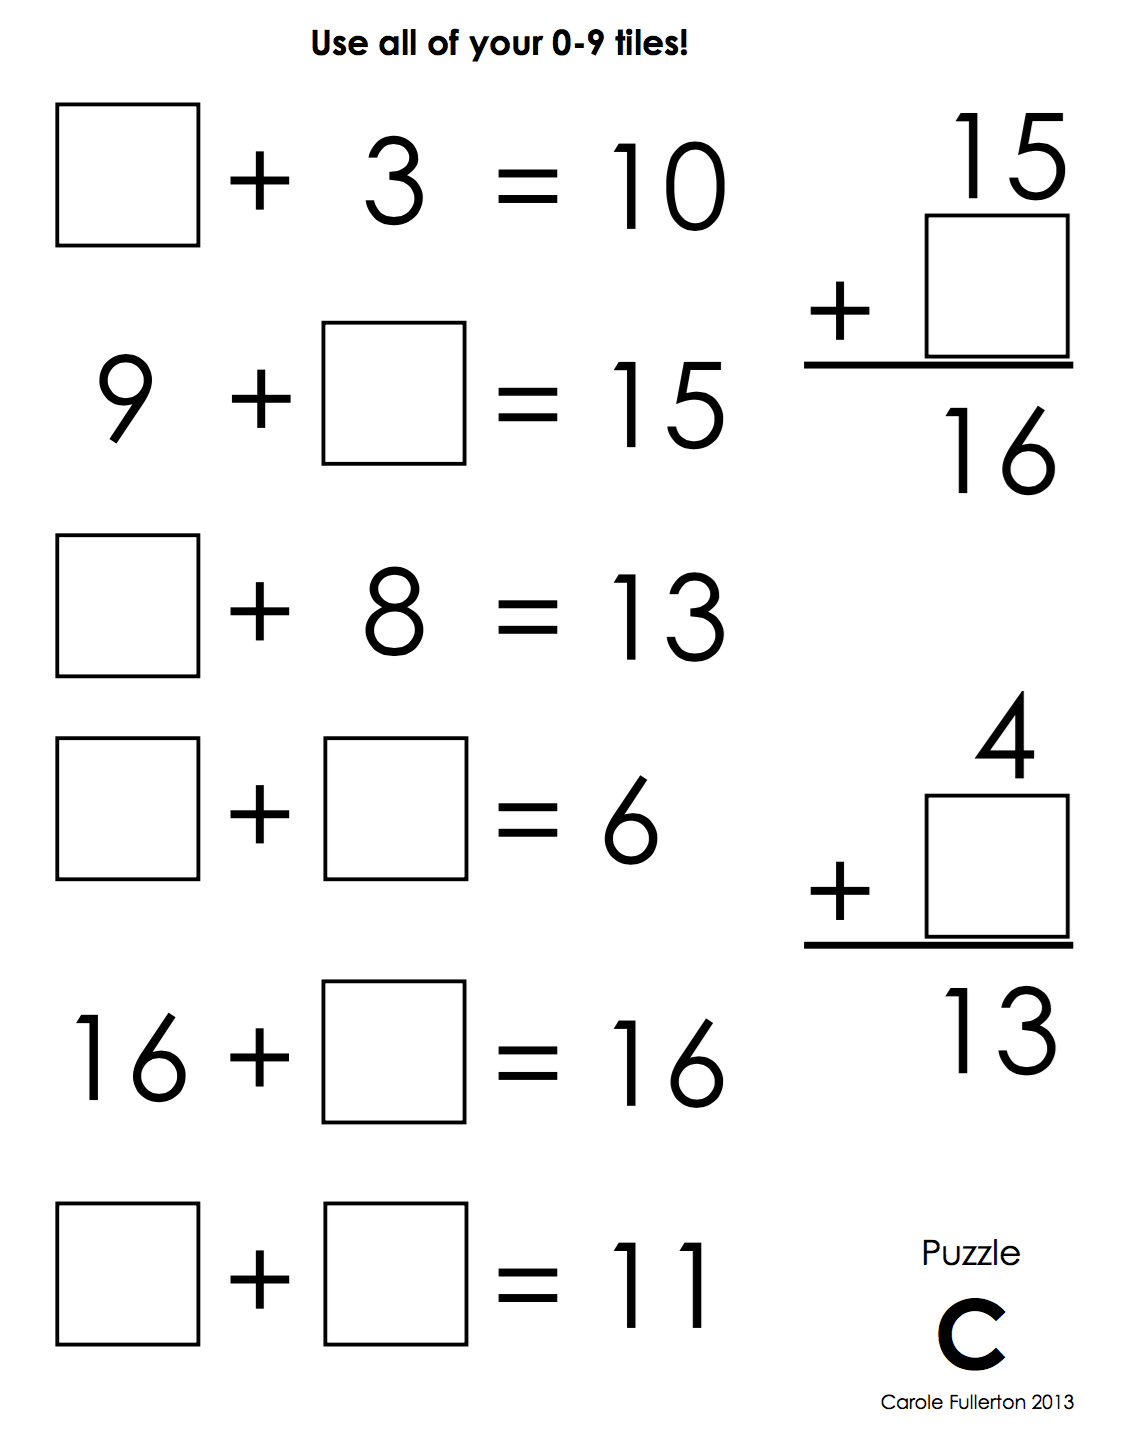 Number Tile Puzzles